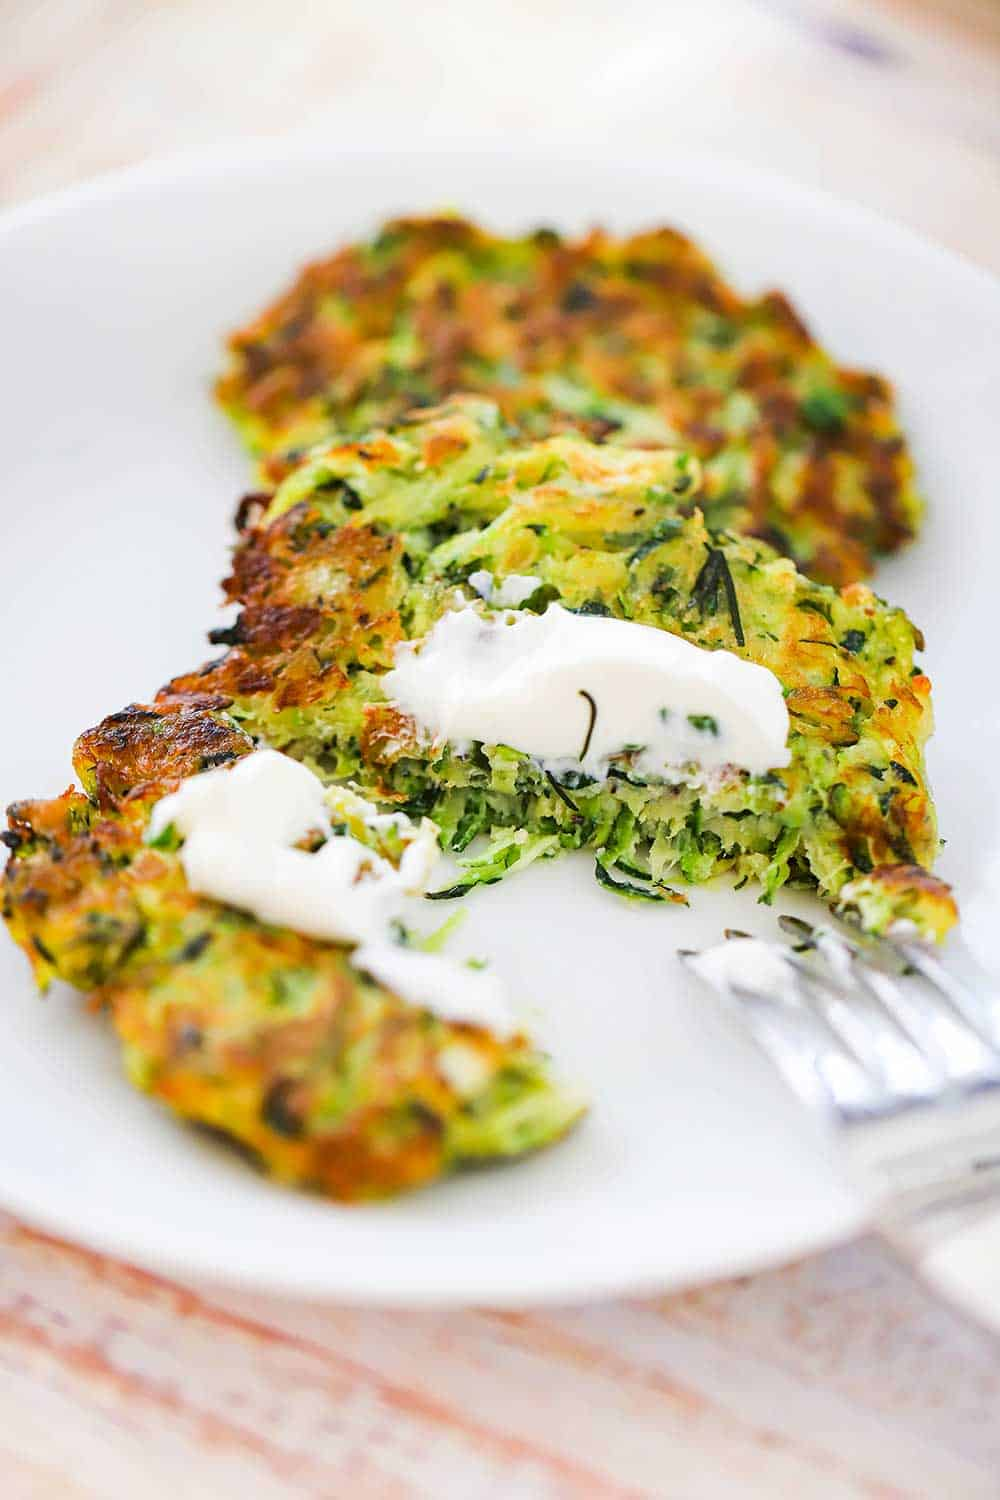 A zucchini fritter that has been split open with a fork and topped with a dollop of sour cream on a white dinner plate.